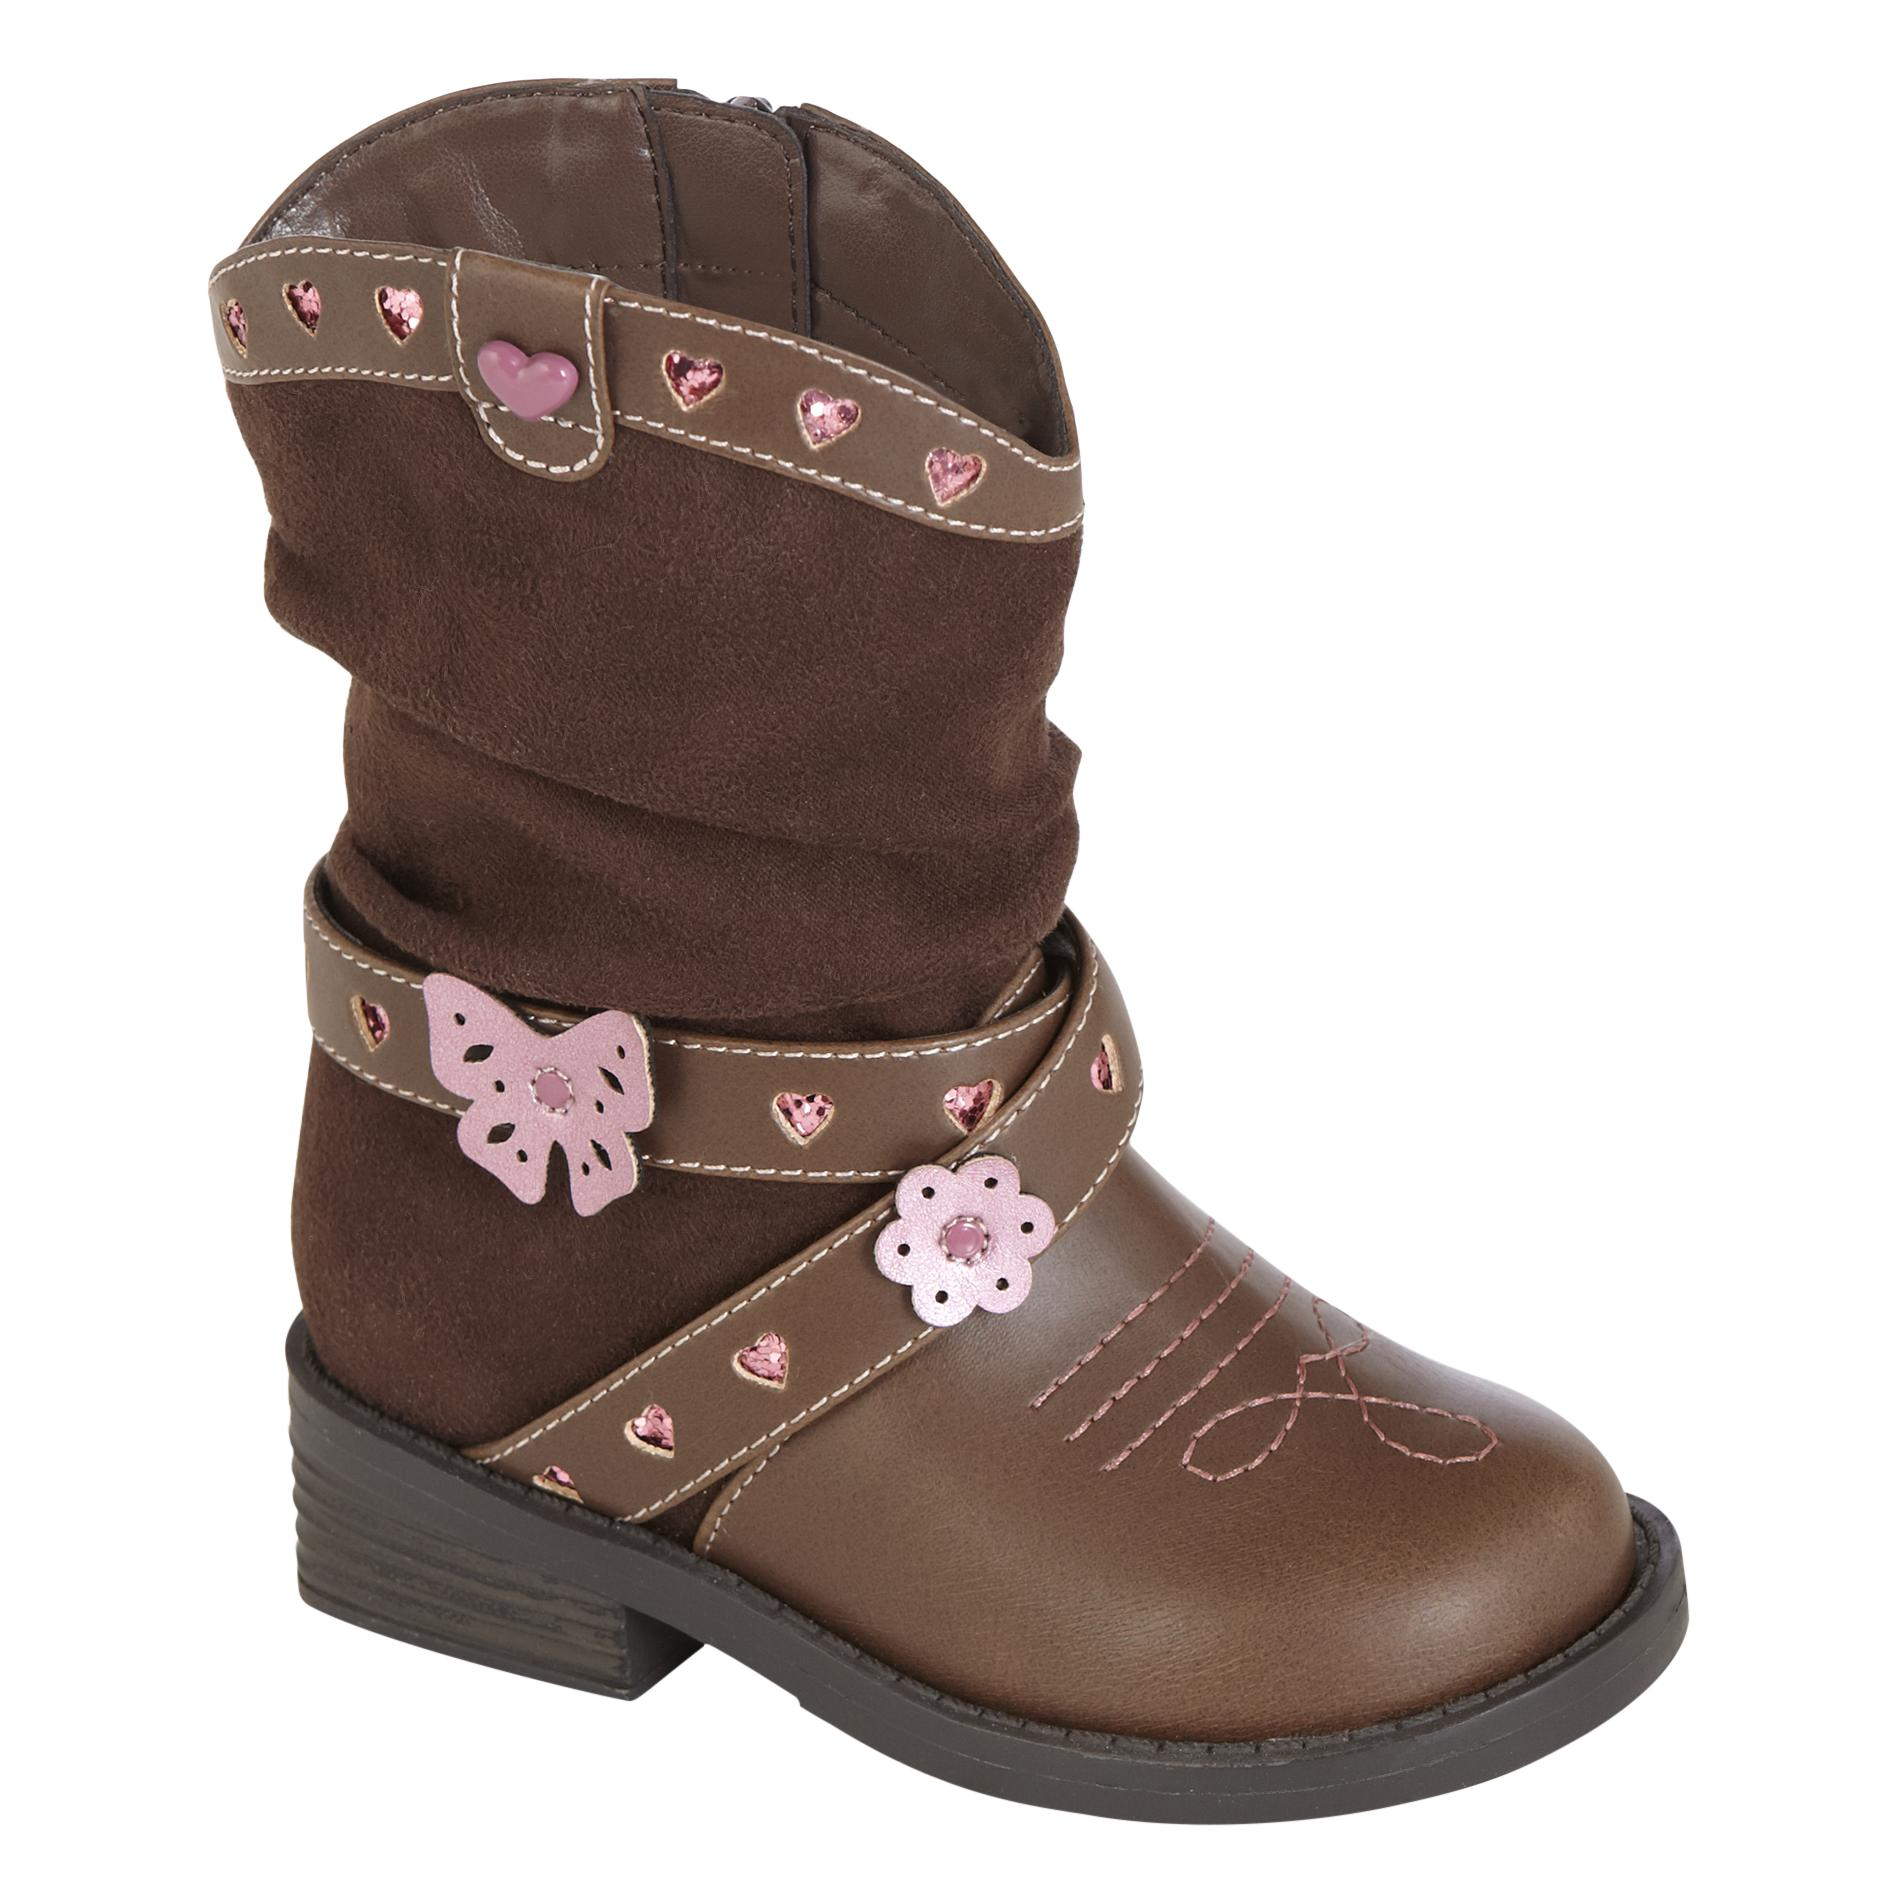 Toddler Girl's Fashion Boot Renata - Brown